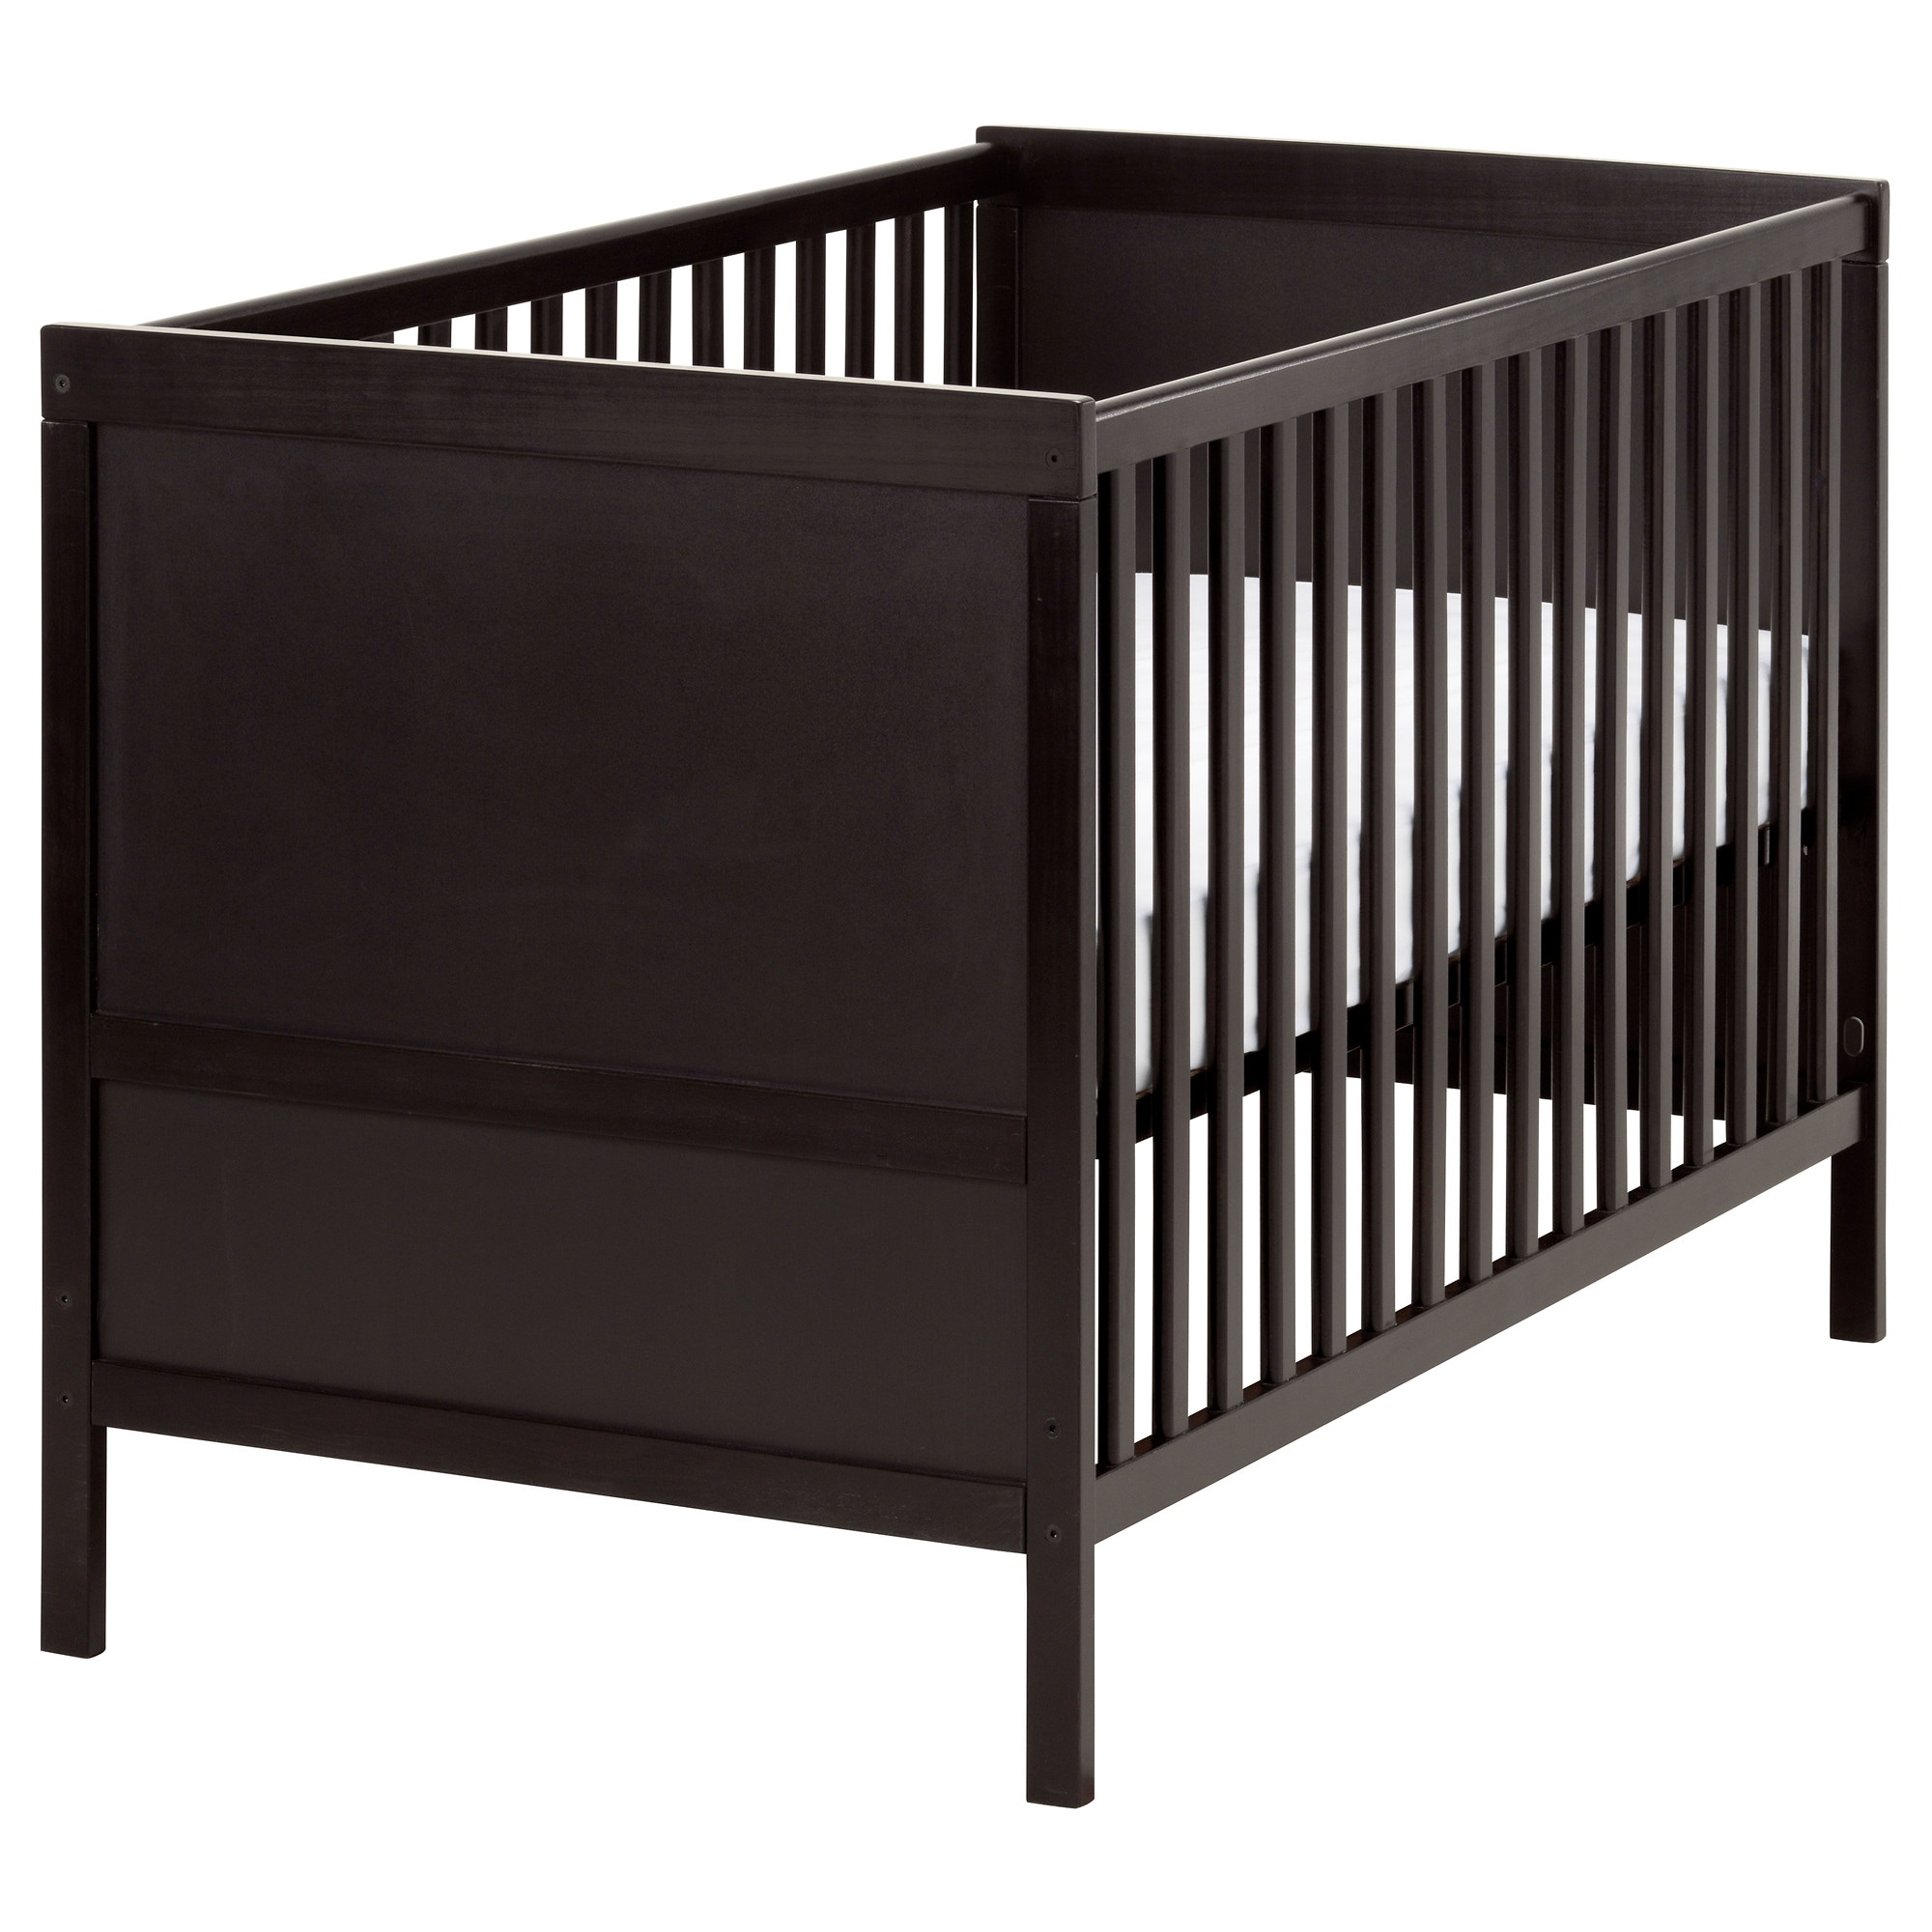 Unfinished crib for sale - Sundvik Crib Black Brown Length 54 3 8 Width 29